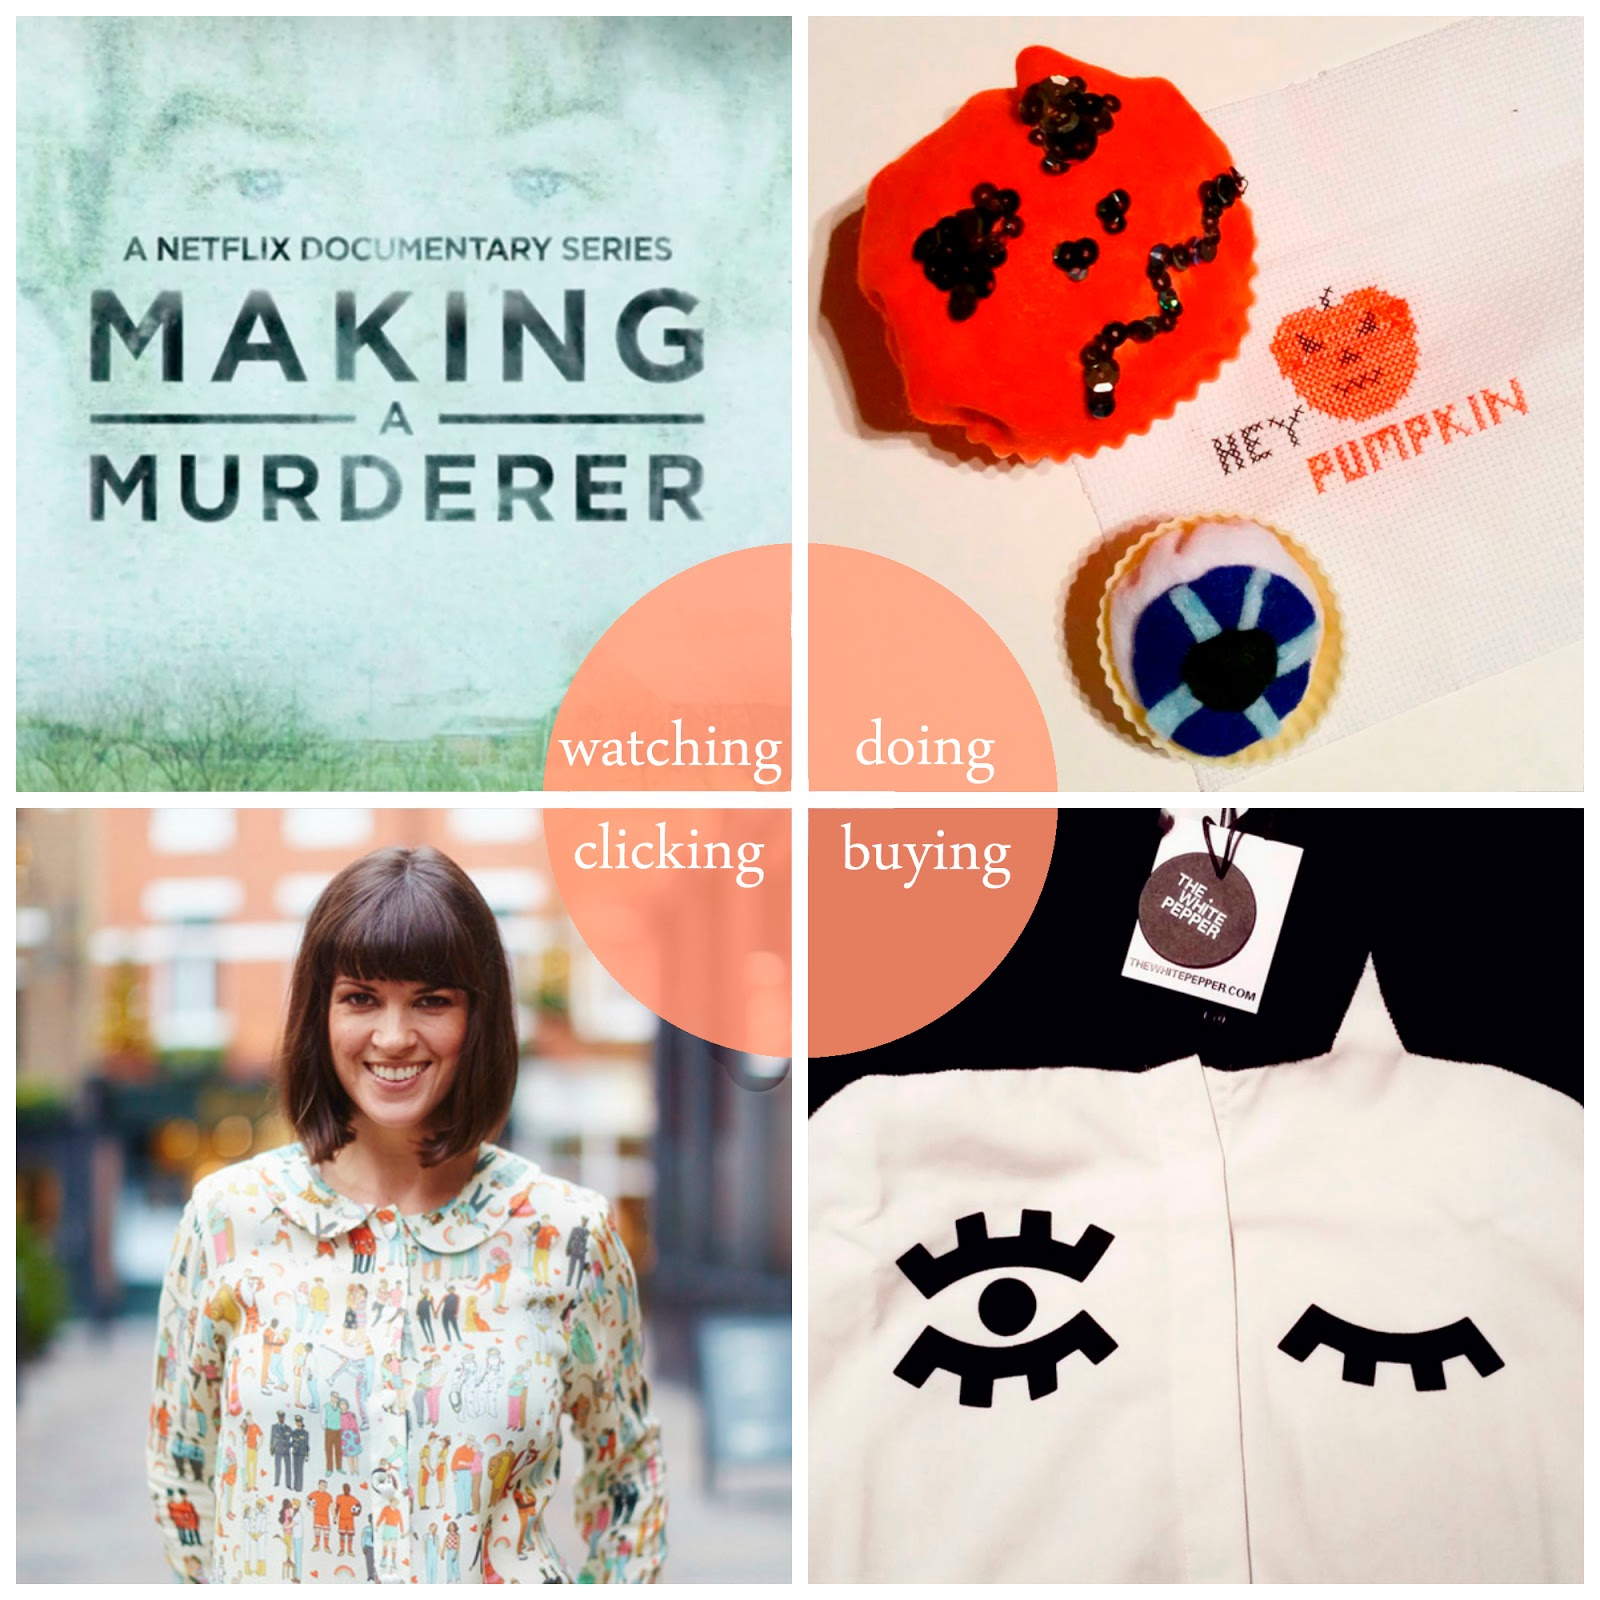 Round up, best bits, blogger favourites, January 2016, Making a Murderer, Say It ain't sew Dundee, Dundee Sewing club, The Whitepepper, BOB by Dawn O'Porter, The Equality Collection